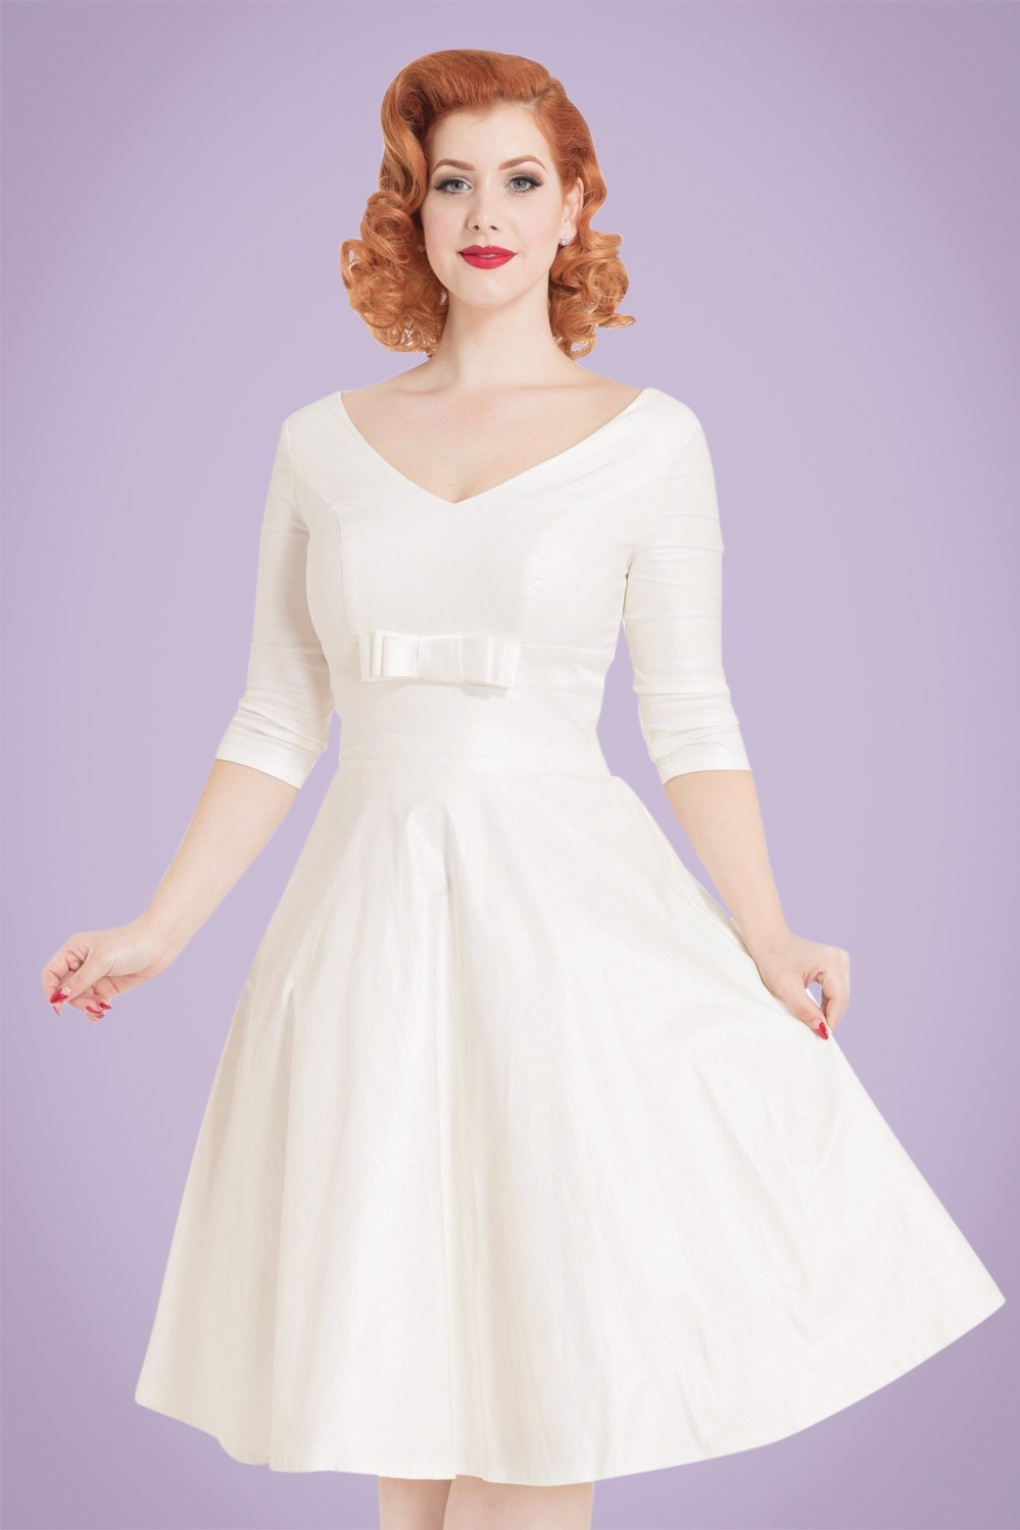 1950s Style Wedding Dresses 50s Dorothy Bridal Swing Dress in Ivory £127.27 AT vintagedancer.com